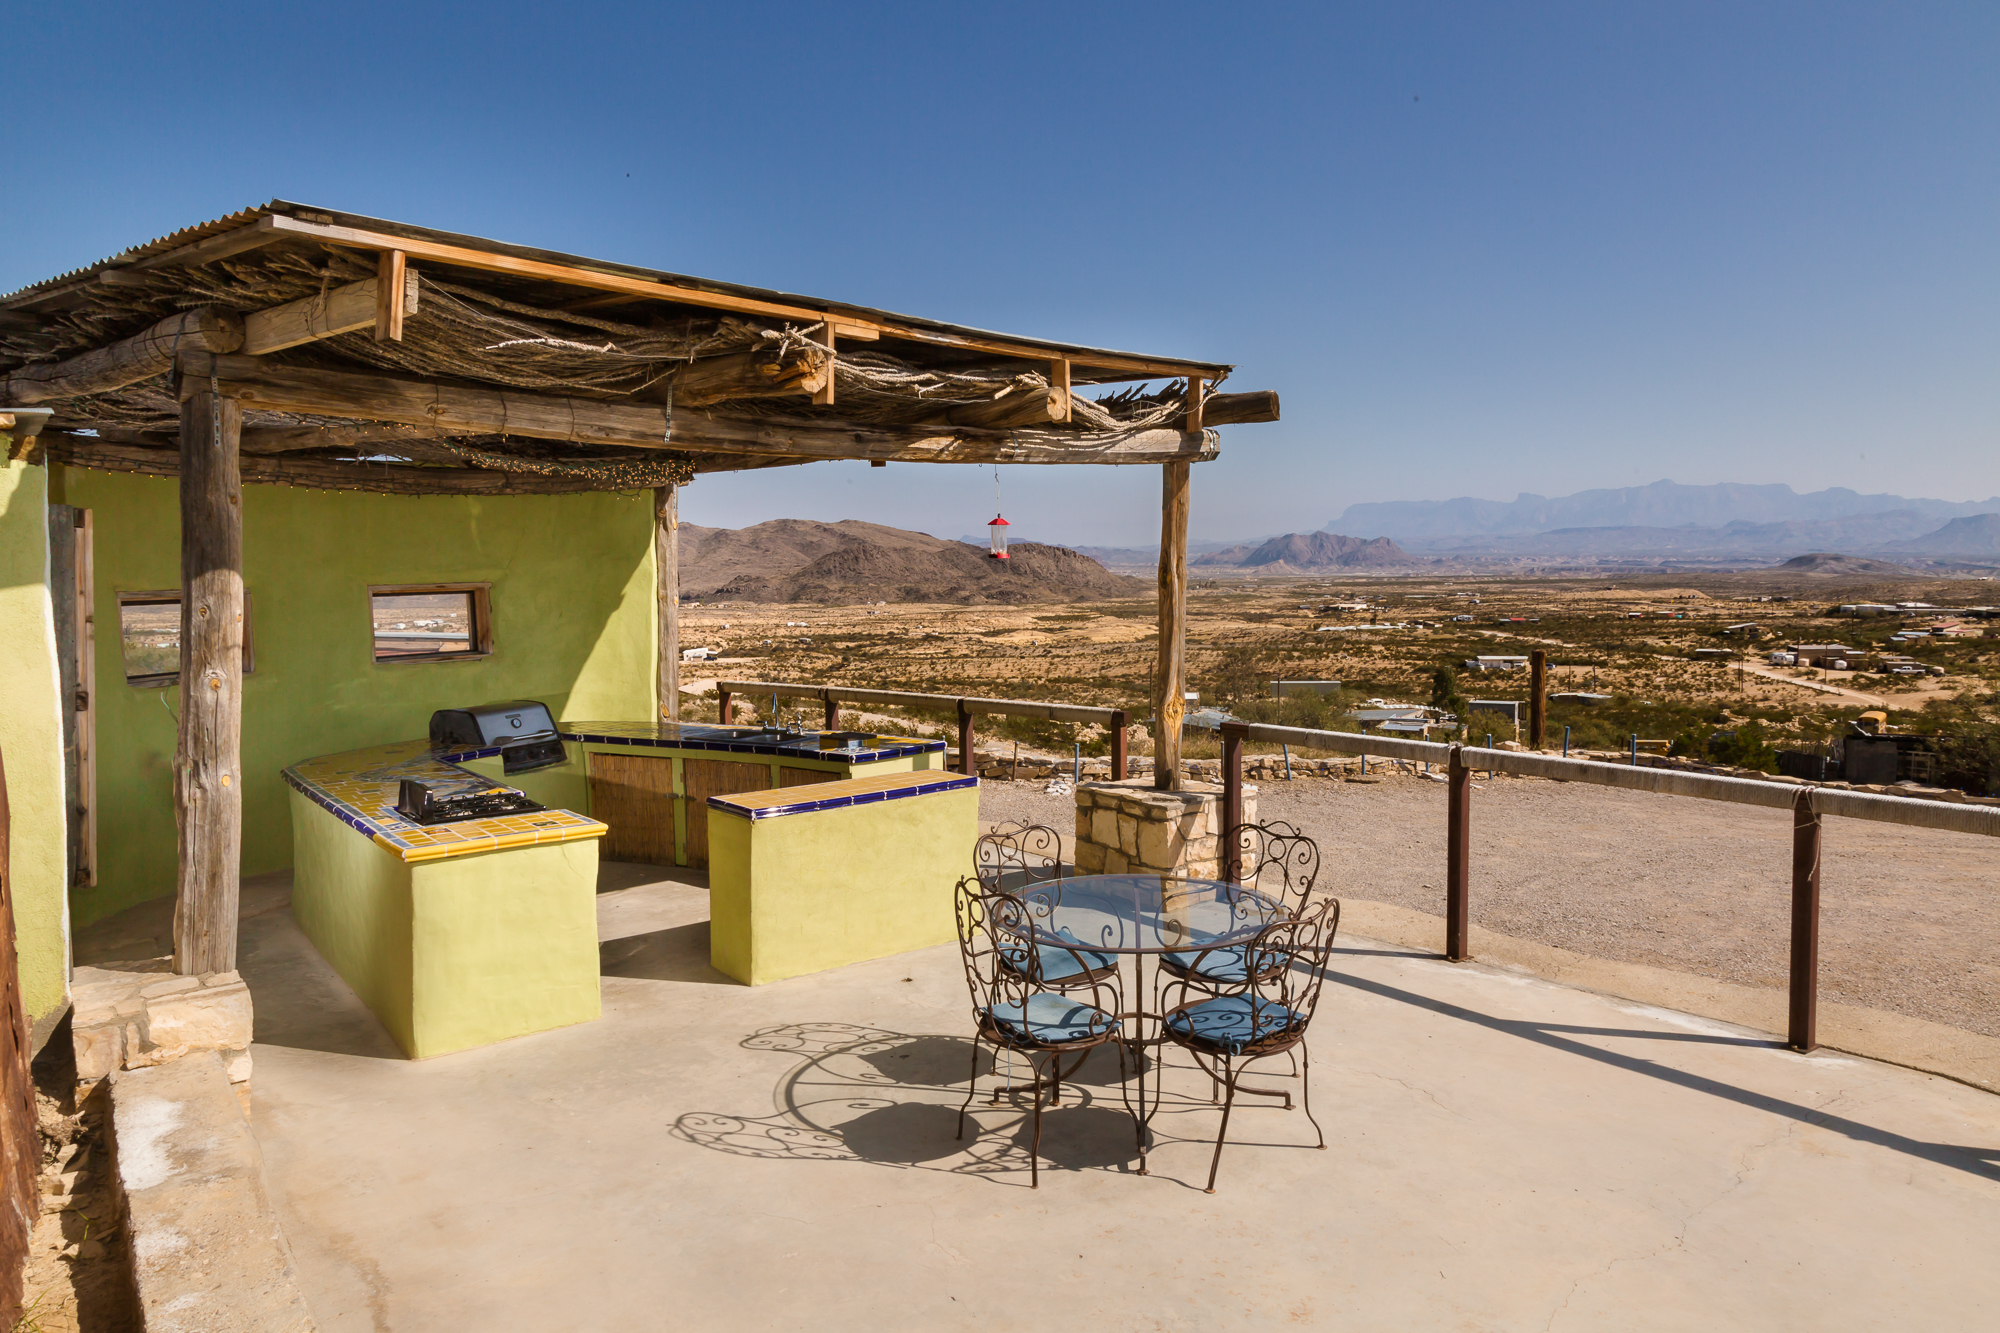 Outdoor kitchen available to couples for preparations of food served at reception.